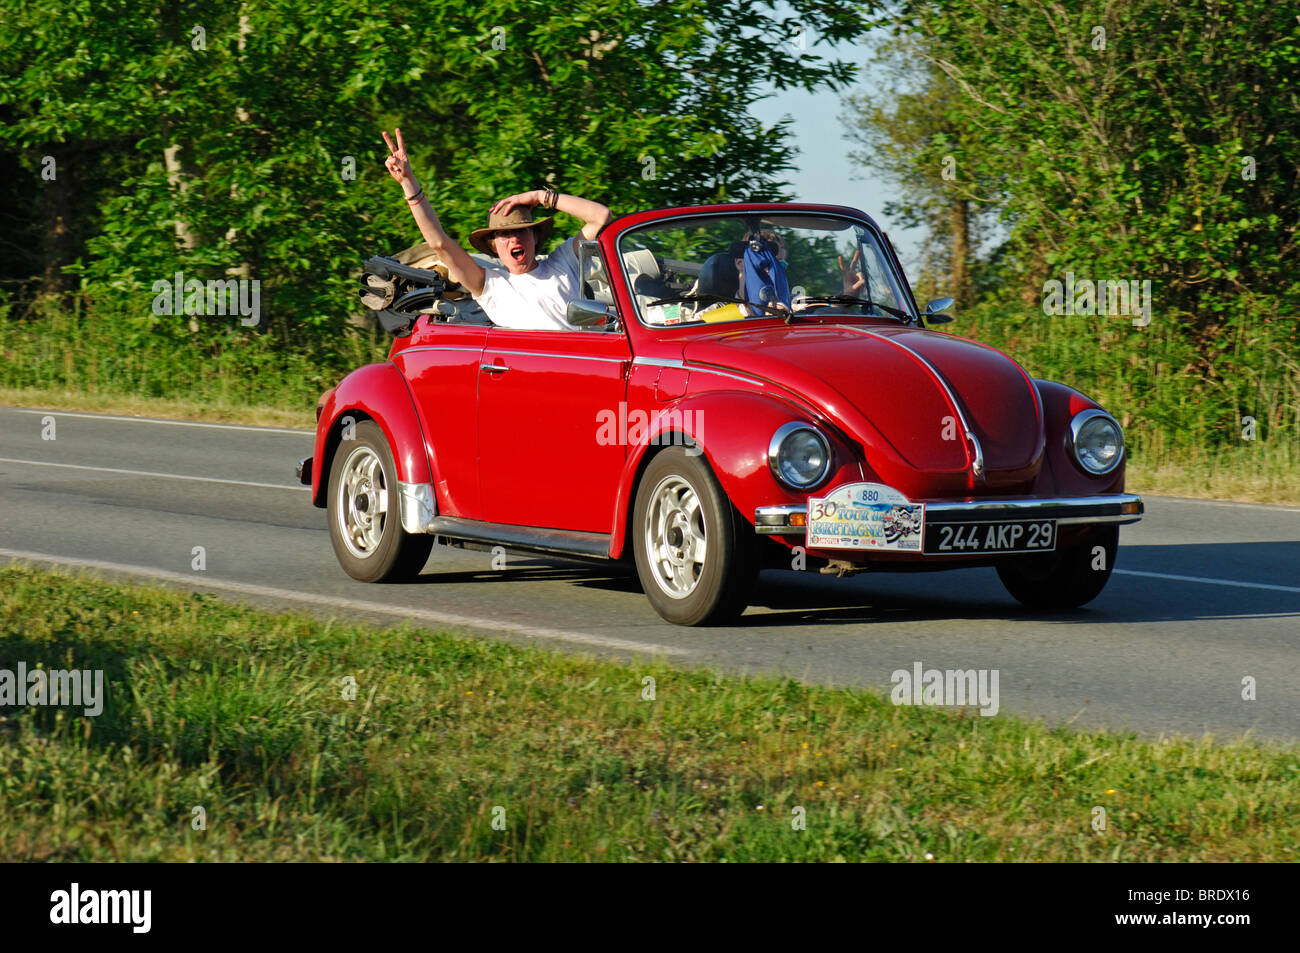 volkswagen beetle car auto classic stock photos volkswagen beetle car auto classic stock. Black Bedroom Furniture Sets. Home Design Ideas